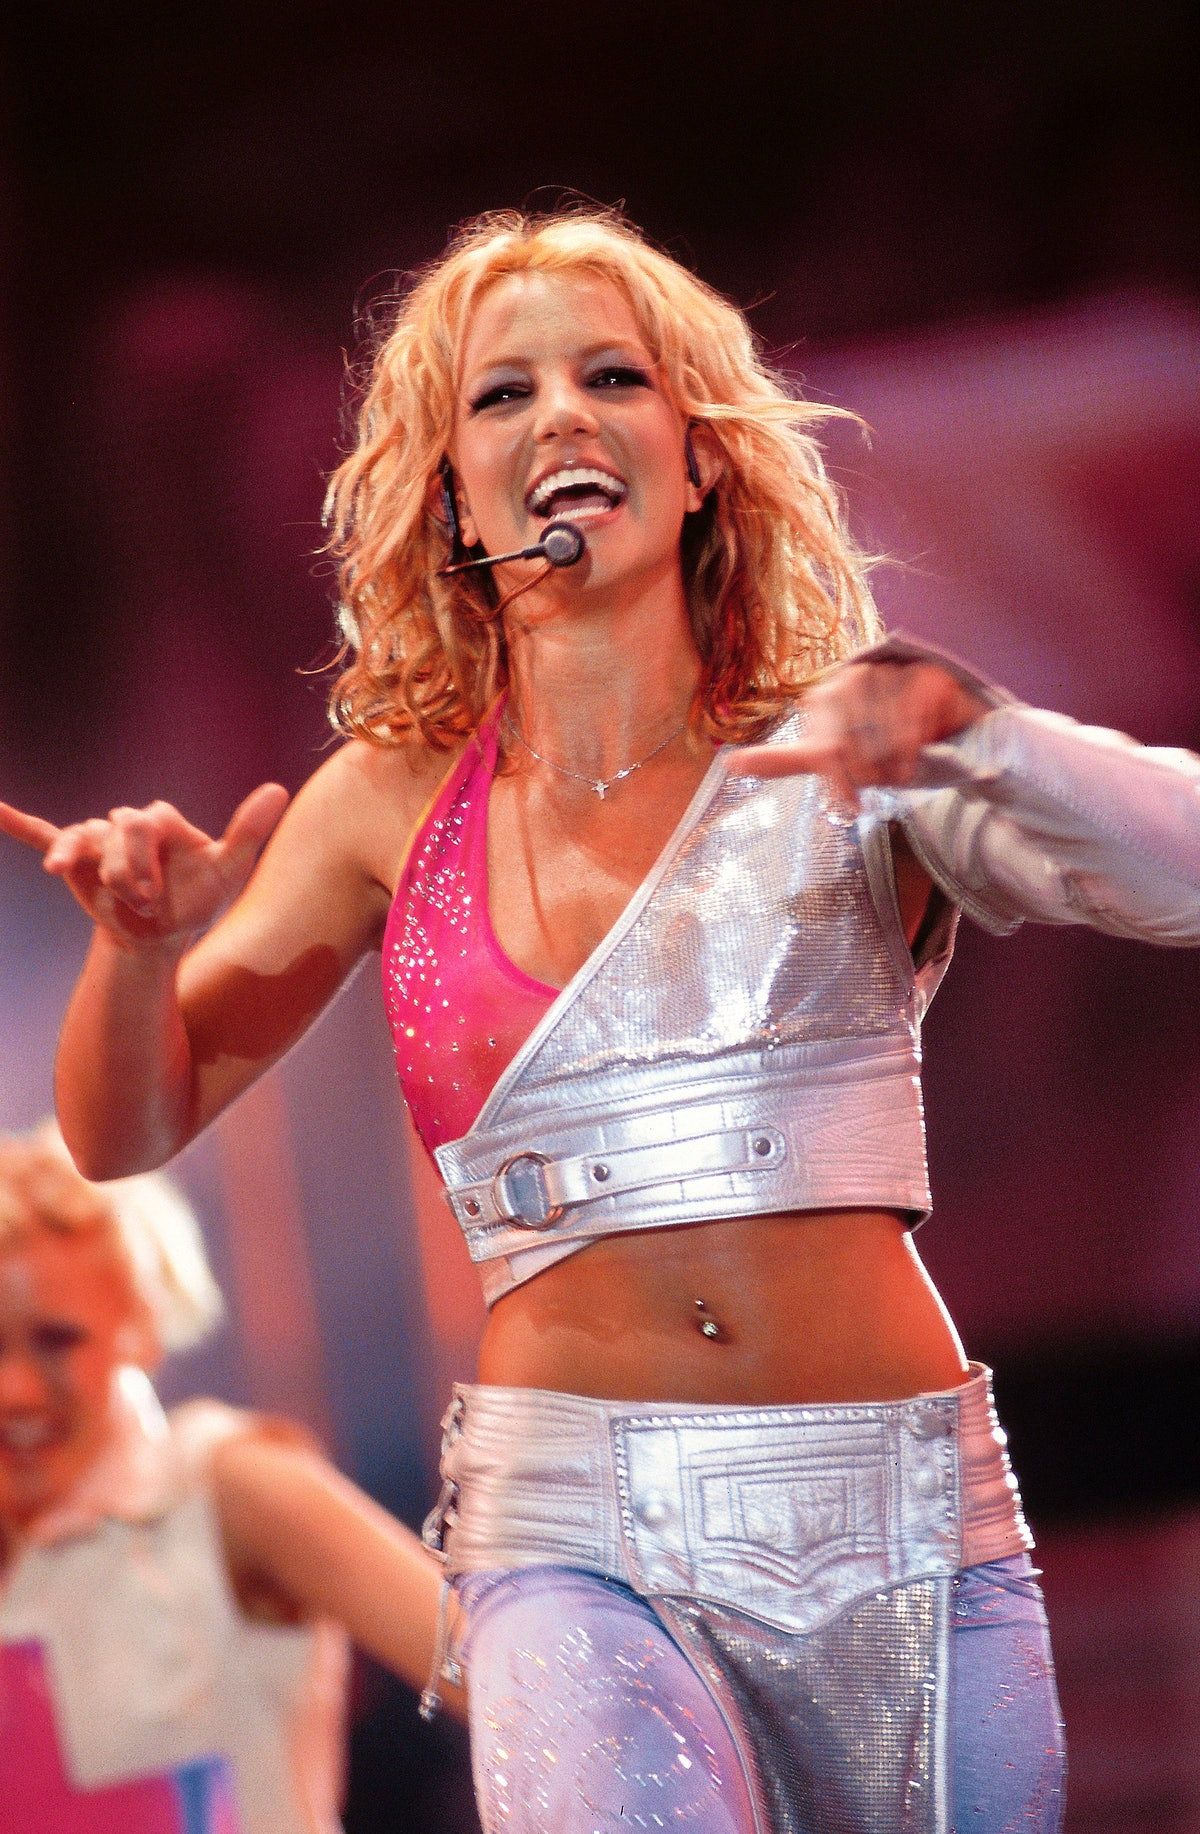 Britney Spears in 2001 wearing a sparkling denim set while performing.